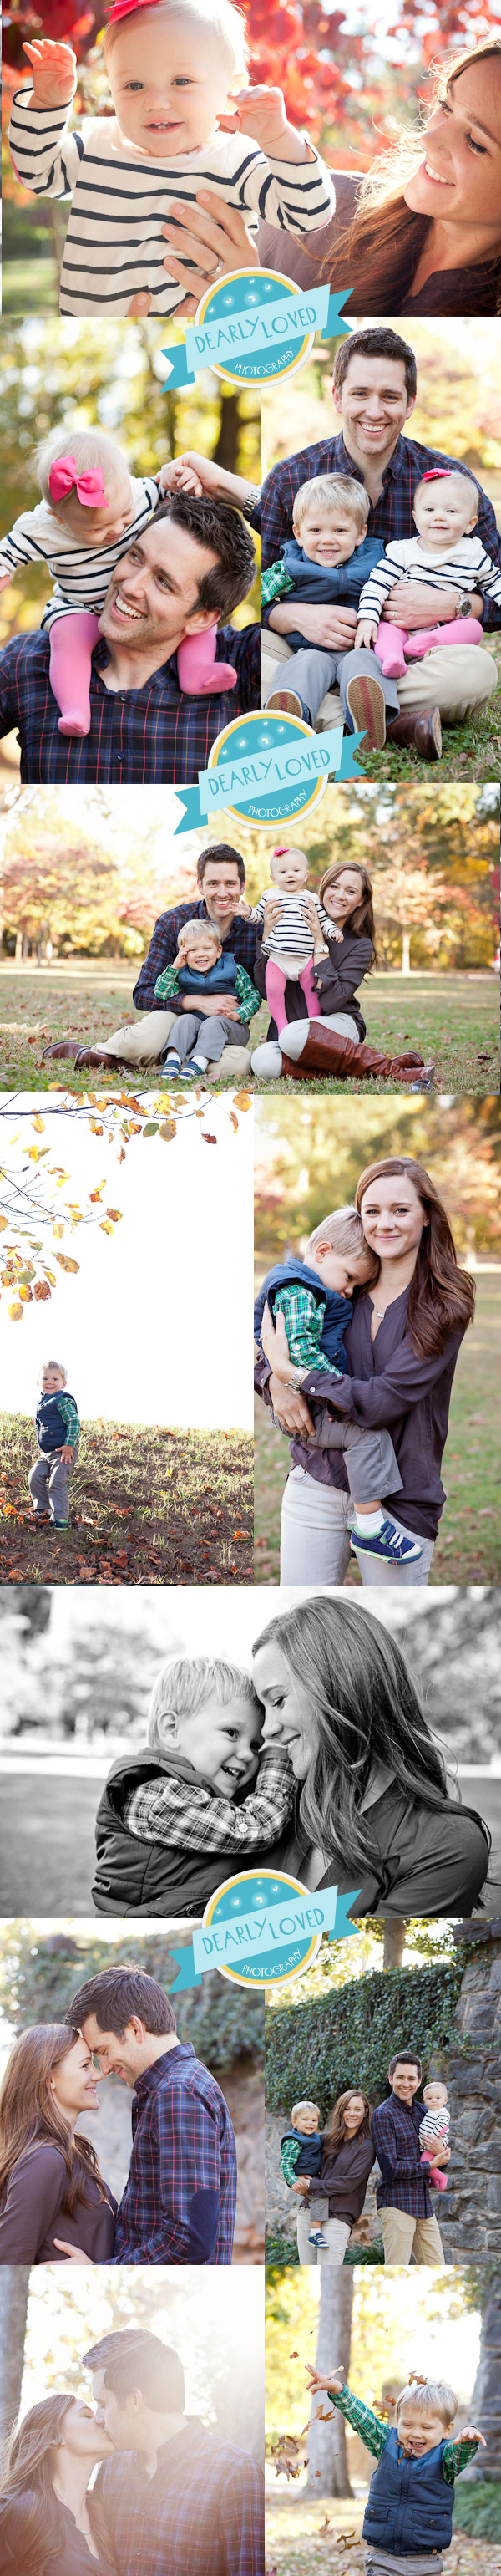 Piedmont Park Family Photography